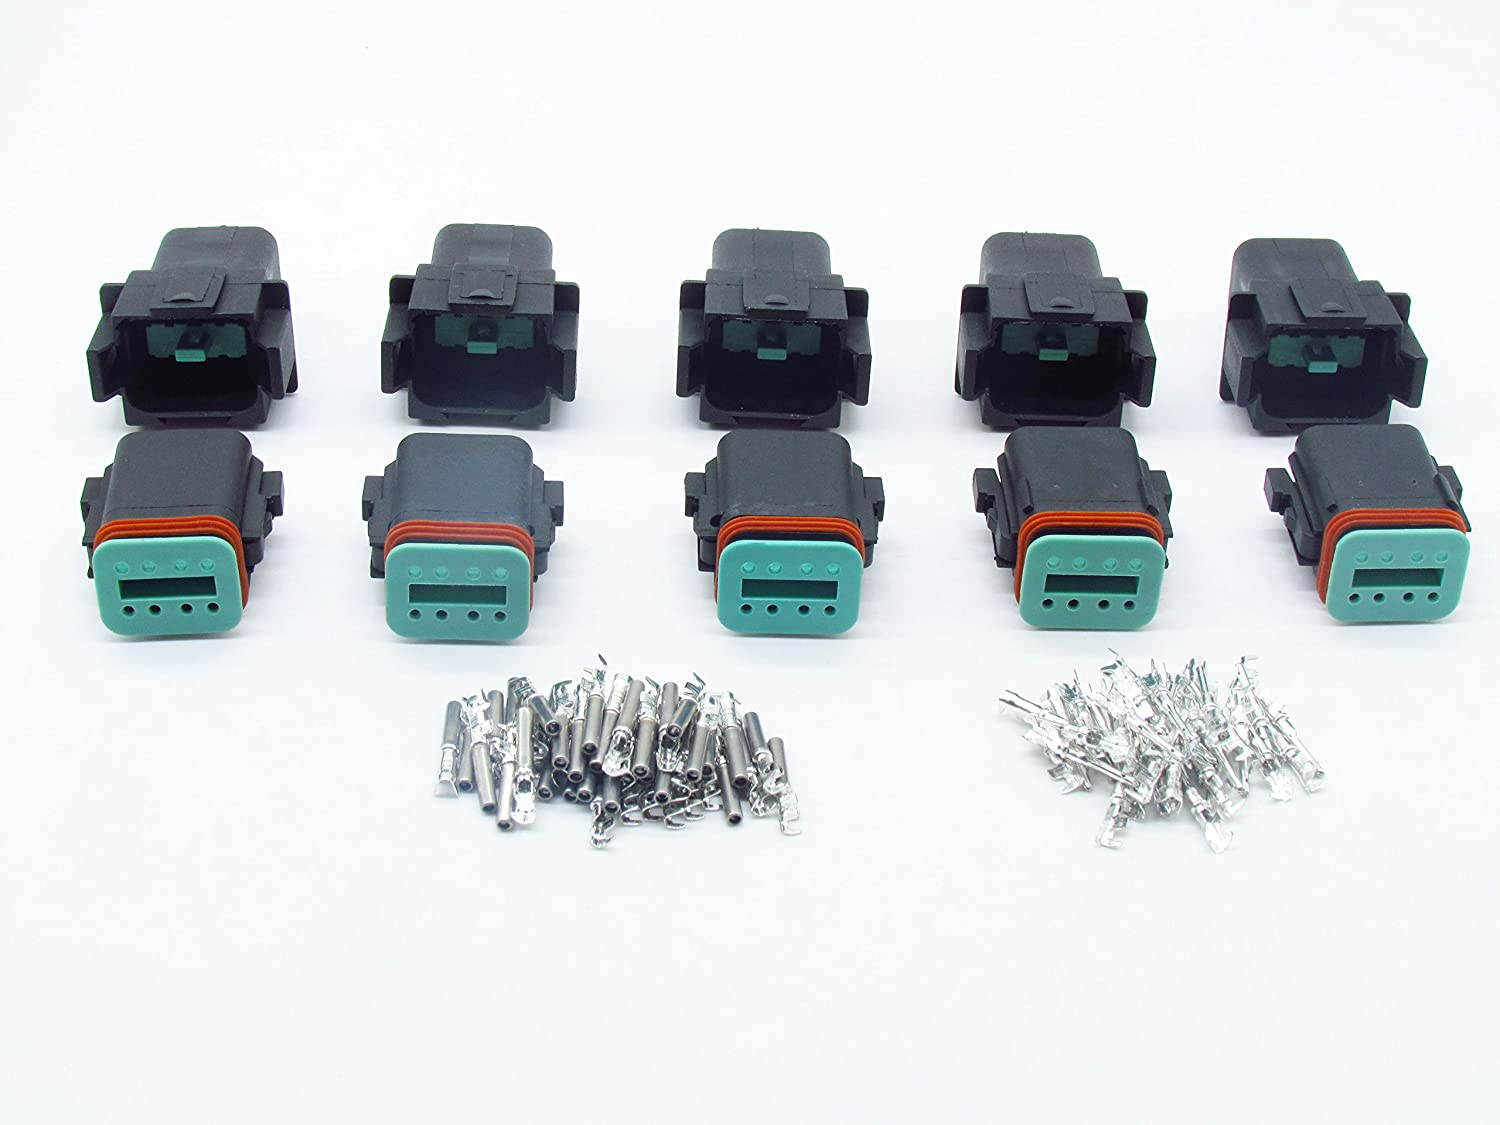 CNKF 5 Sets Gray DT Connector 3 Pin DT04-3P//DT06-3S Automobile 22-16AWG waterproof wire electrical connector plug